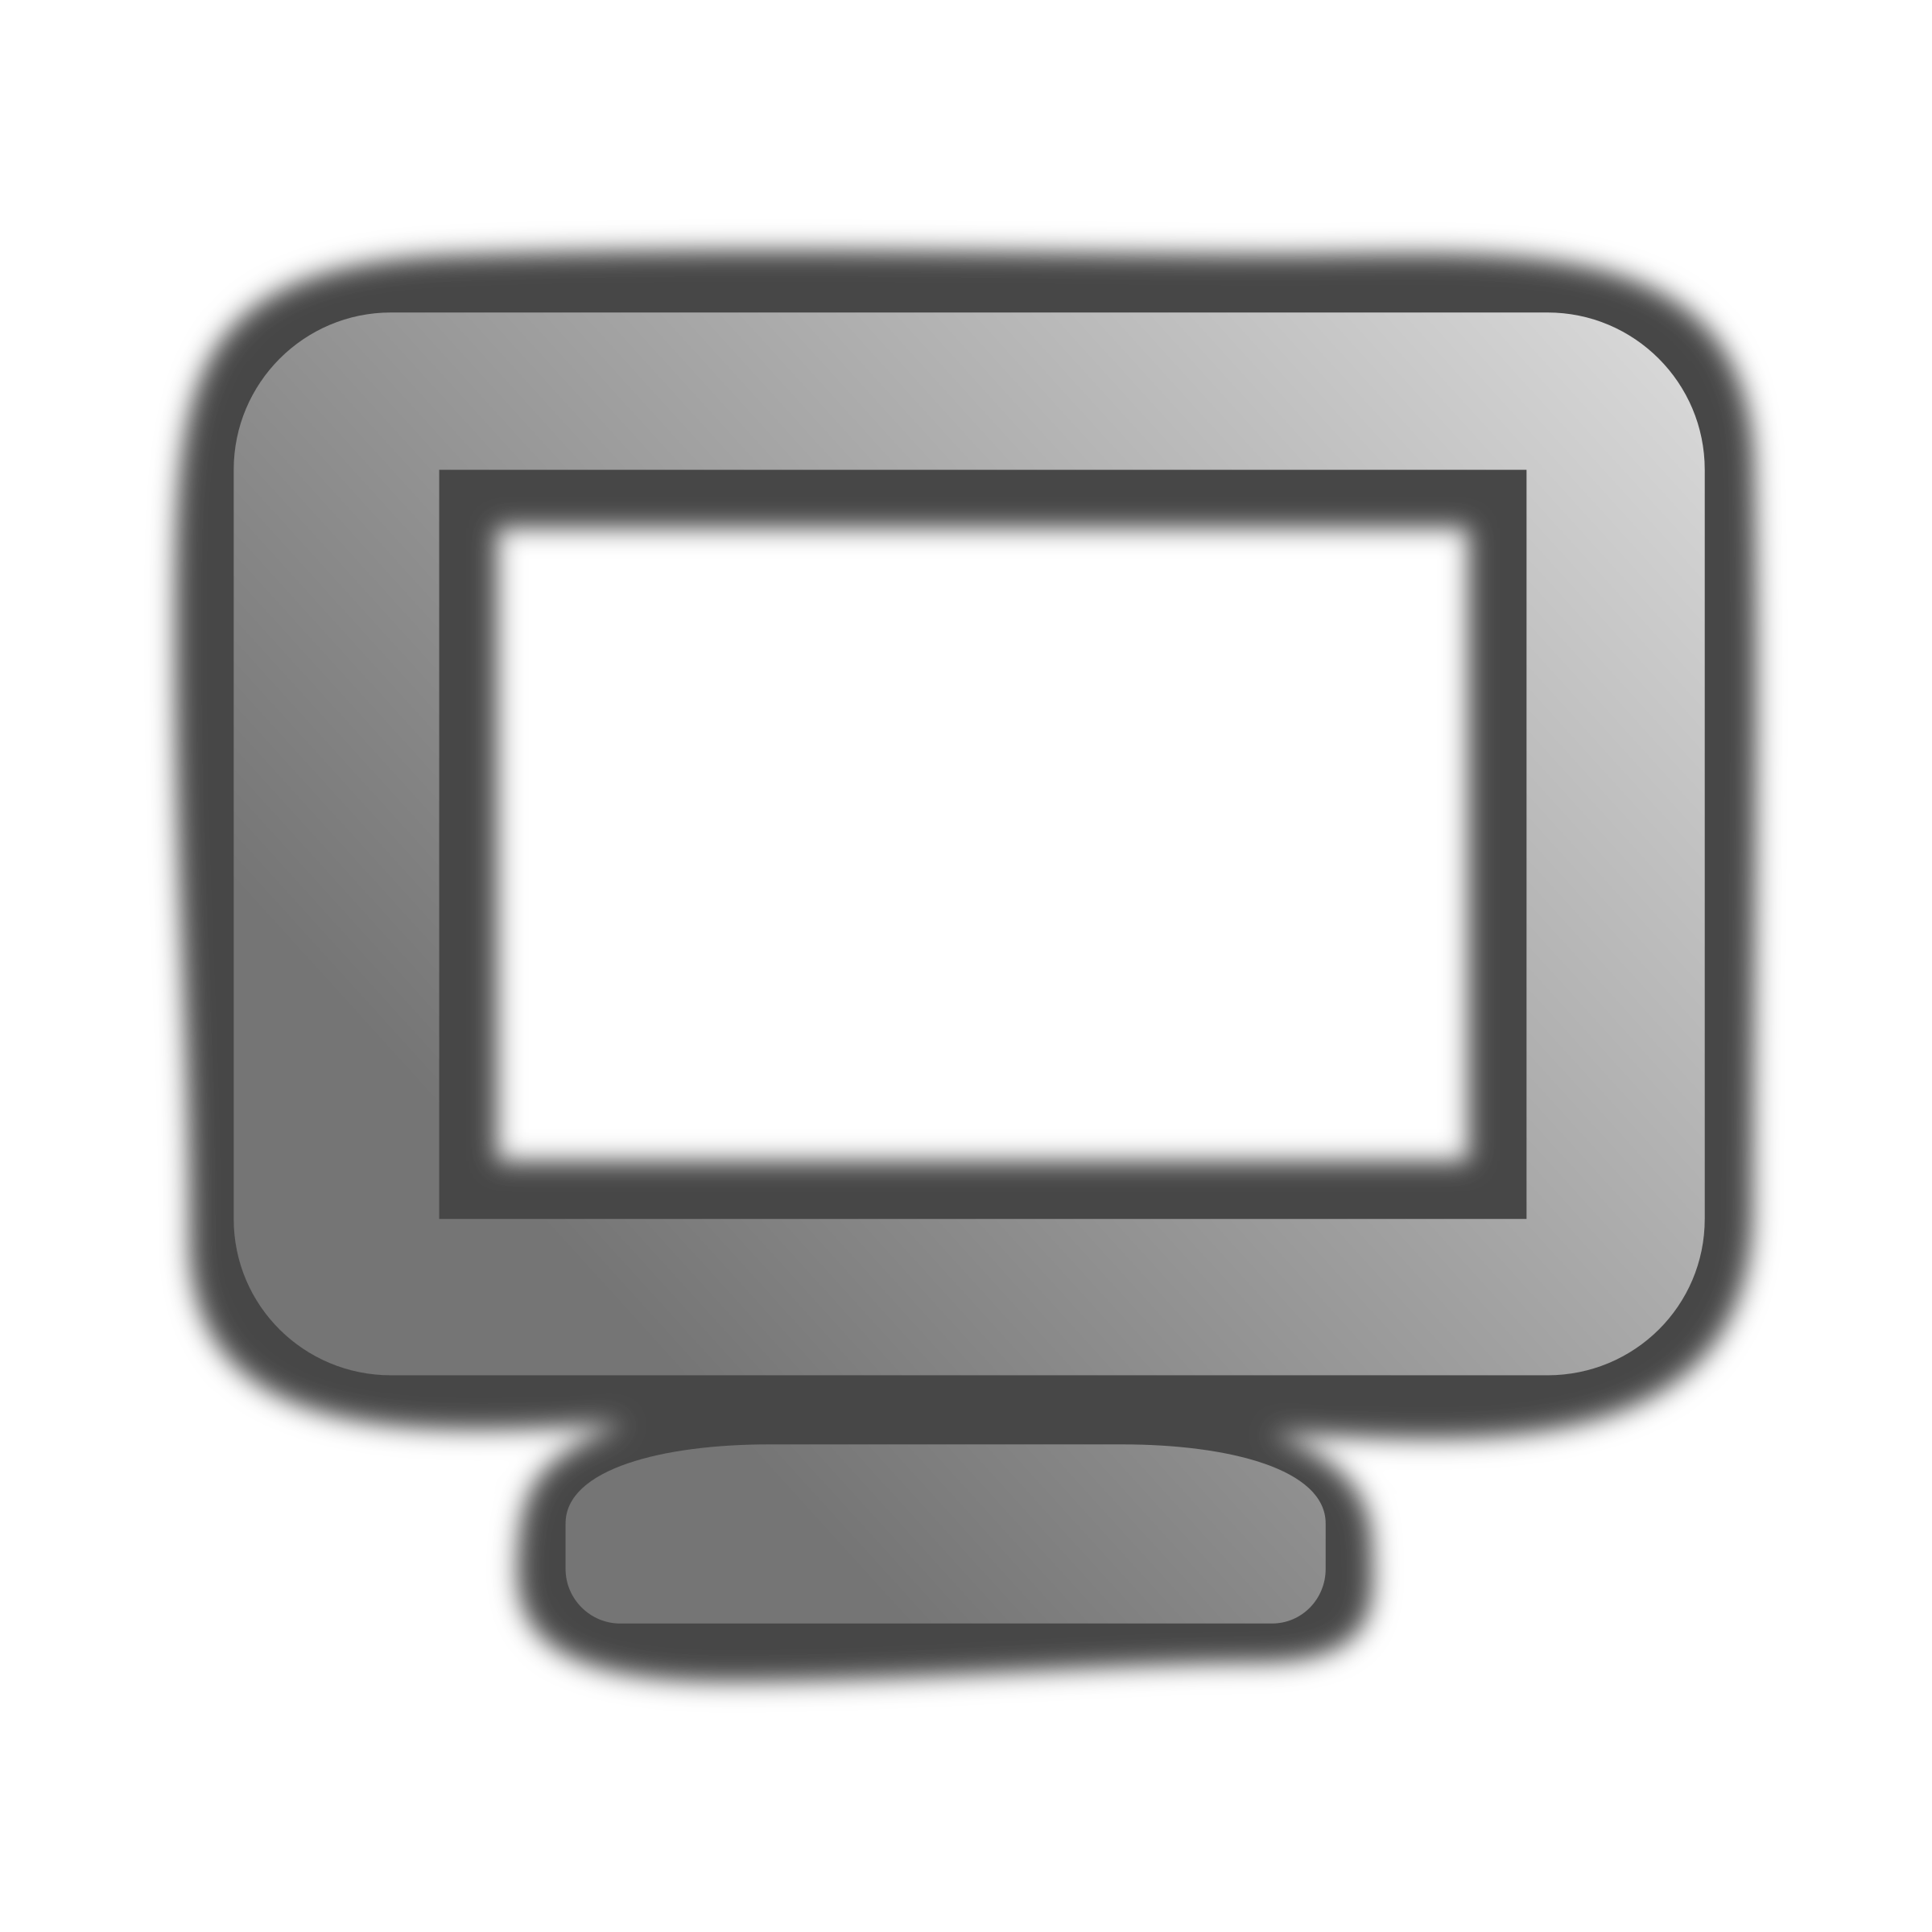 Design clipart computer. Icon big image png